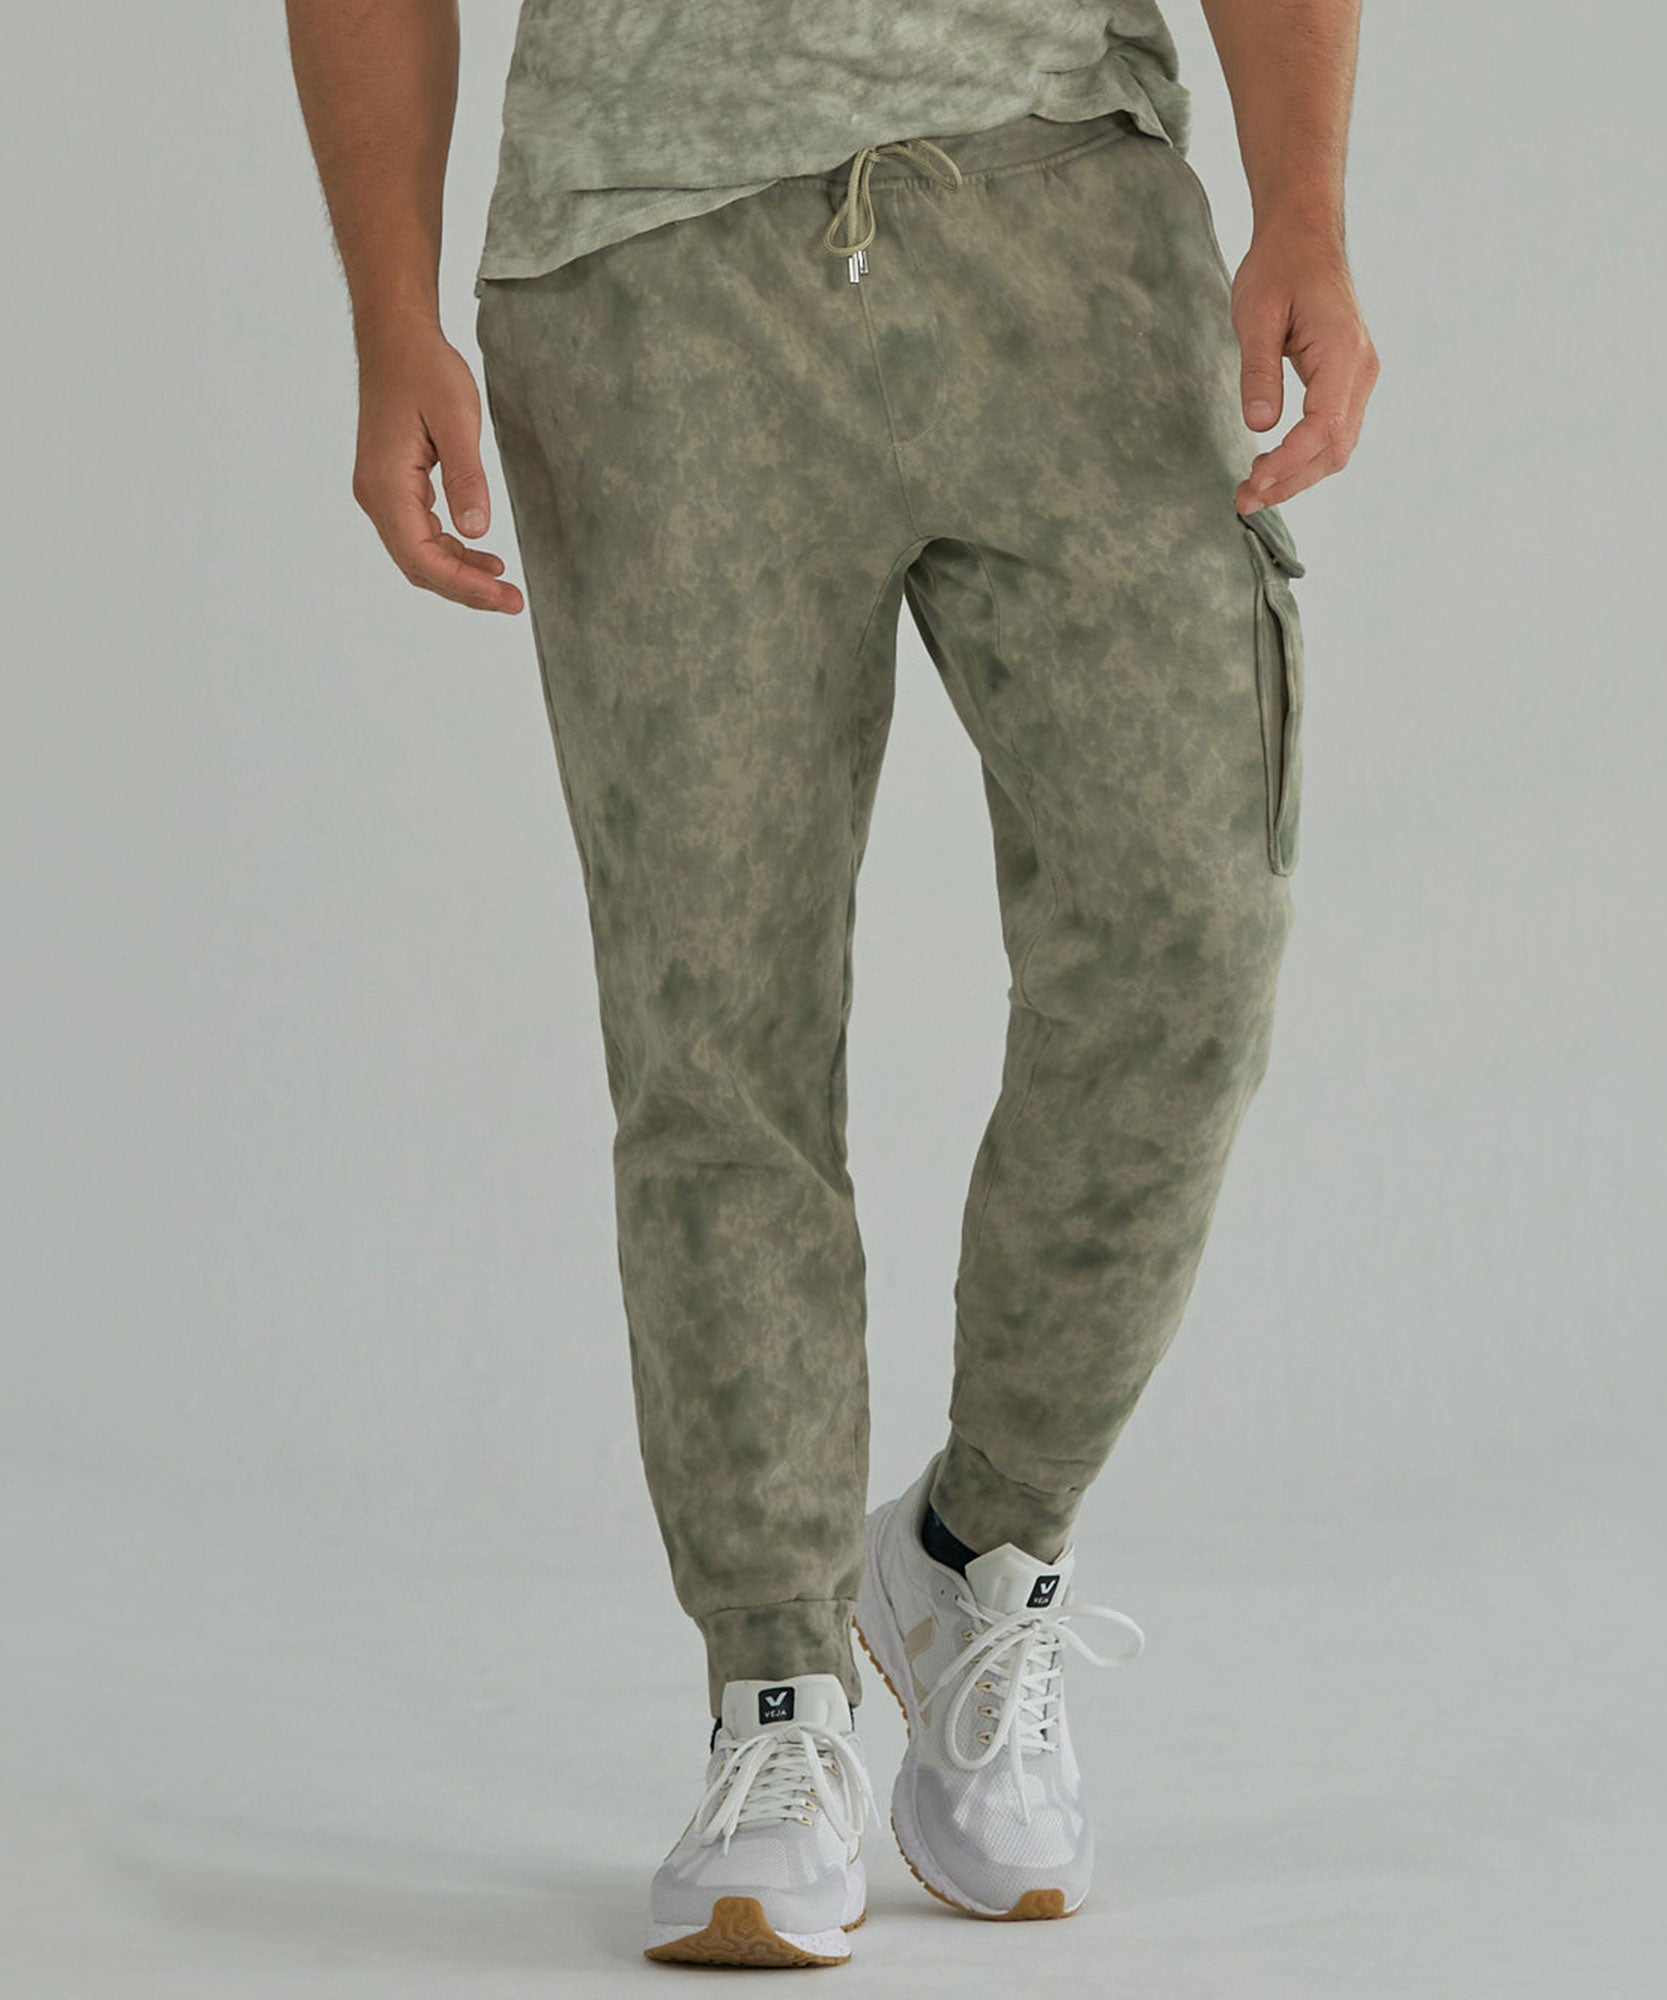 Army Combo French Terry Abstract Camo Fleece Sweatpants - Men's Luxe Loungewear by ATM Anthony Thomas Melillo